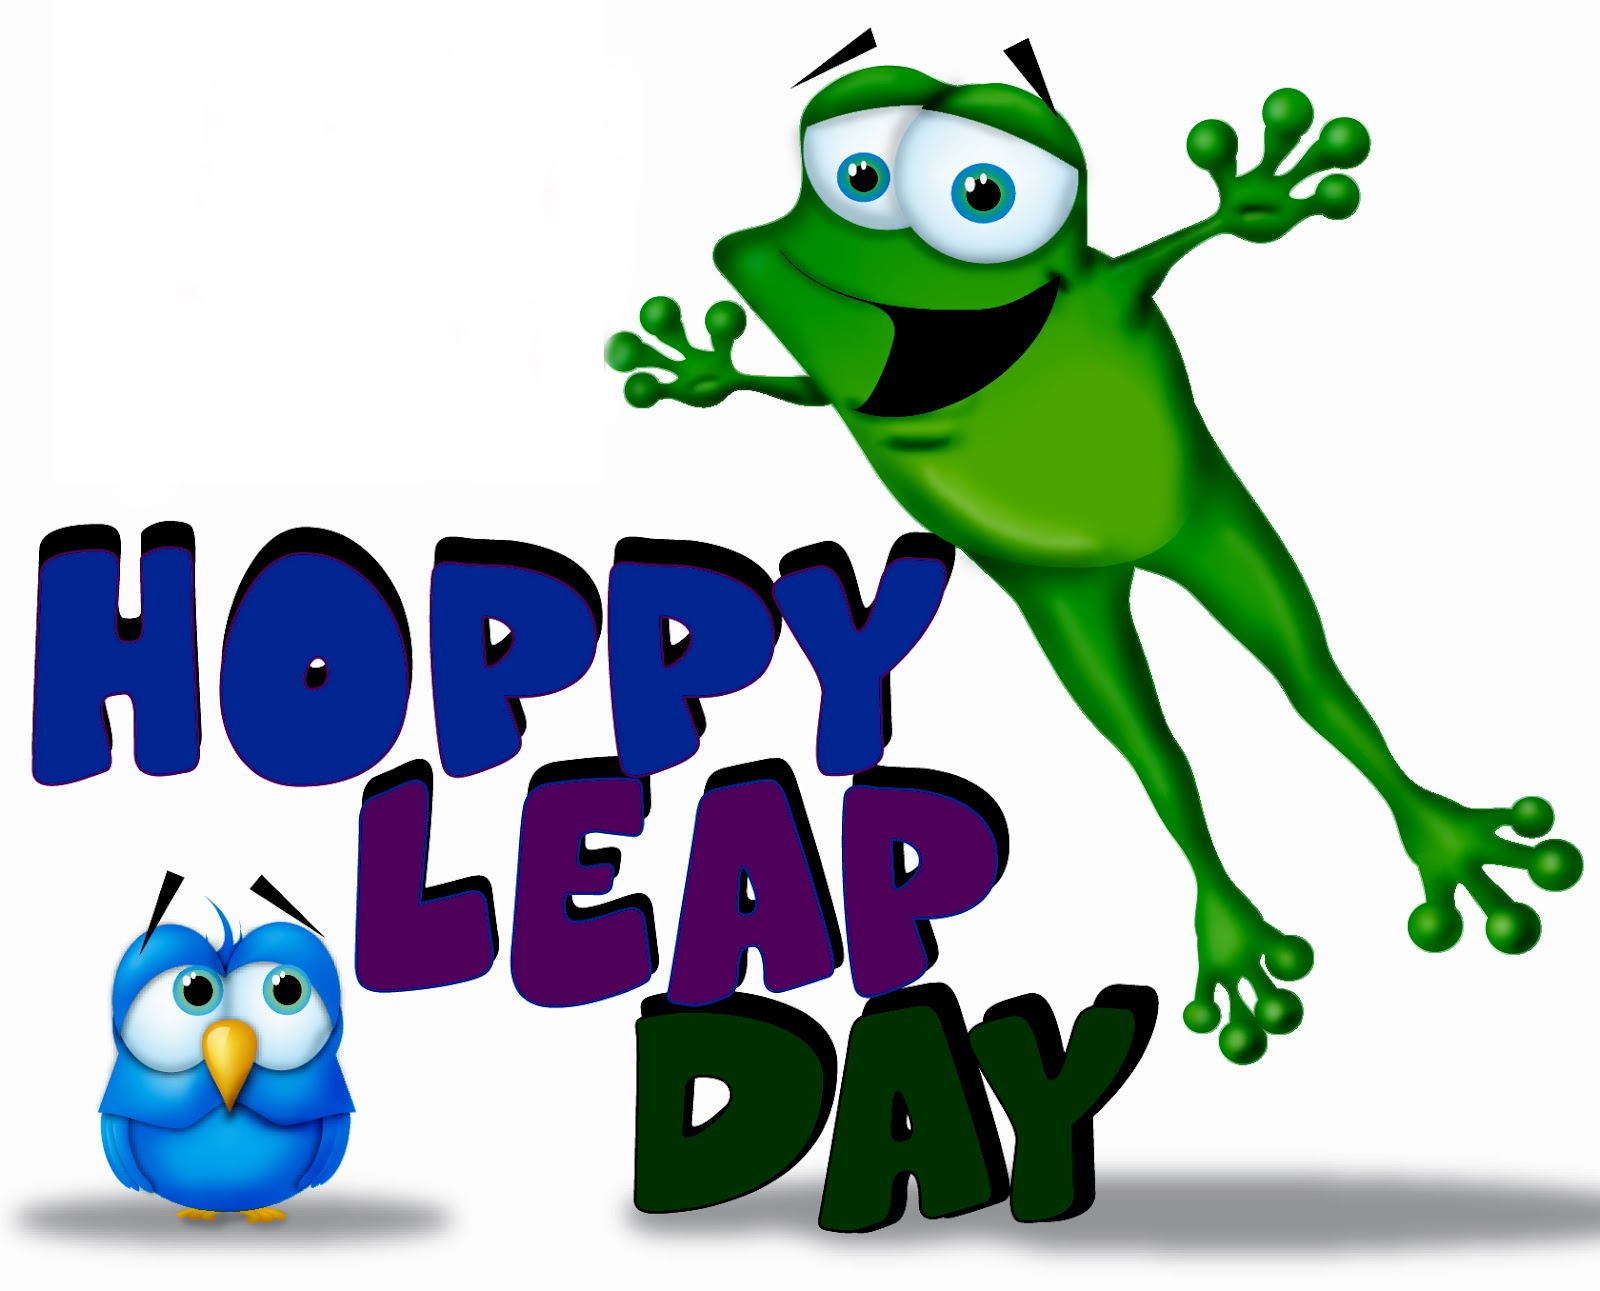 February 29. Leap year clipart free